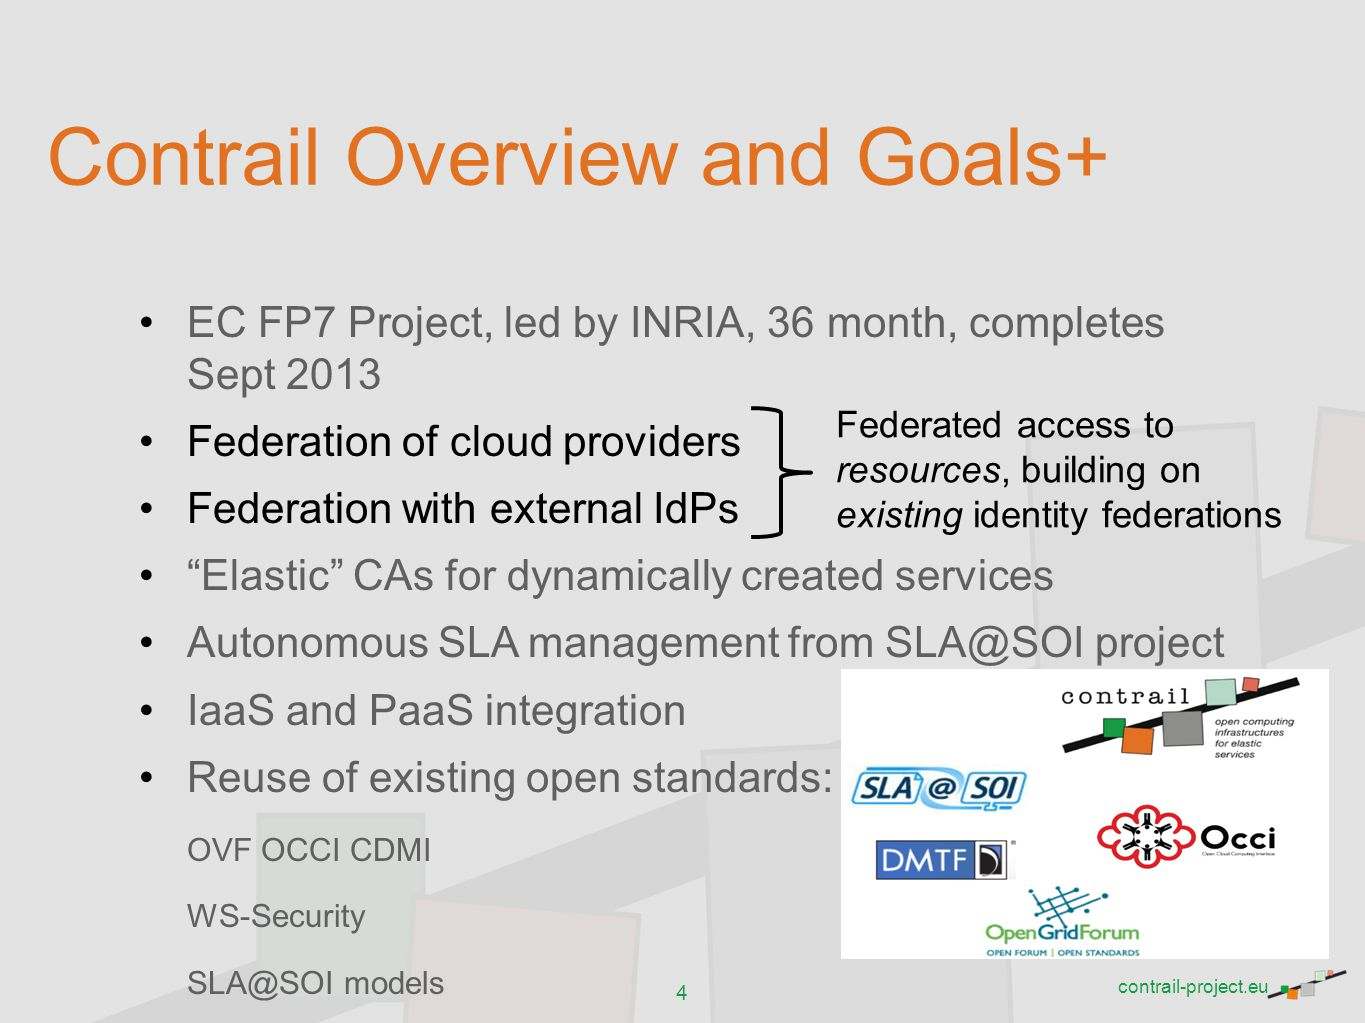 contrail-project.eu Contrail Overview and Goals+ EC FP7 Project, led by INRIA, 36 month, completes Sept 2013 Federation of cloud providers Federation